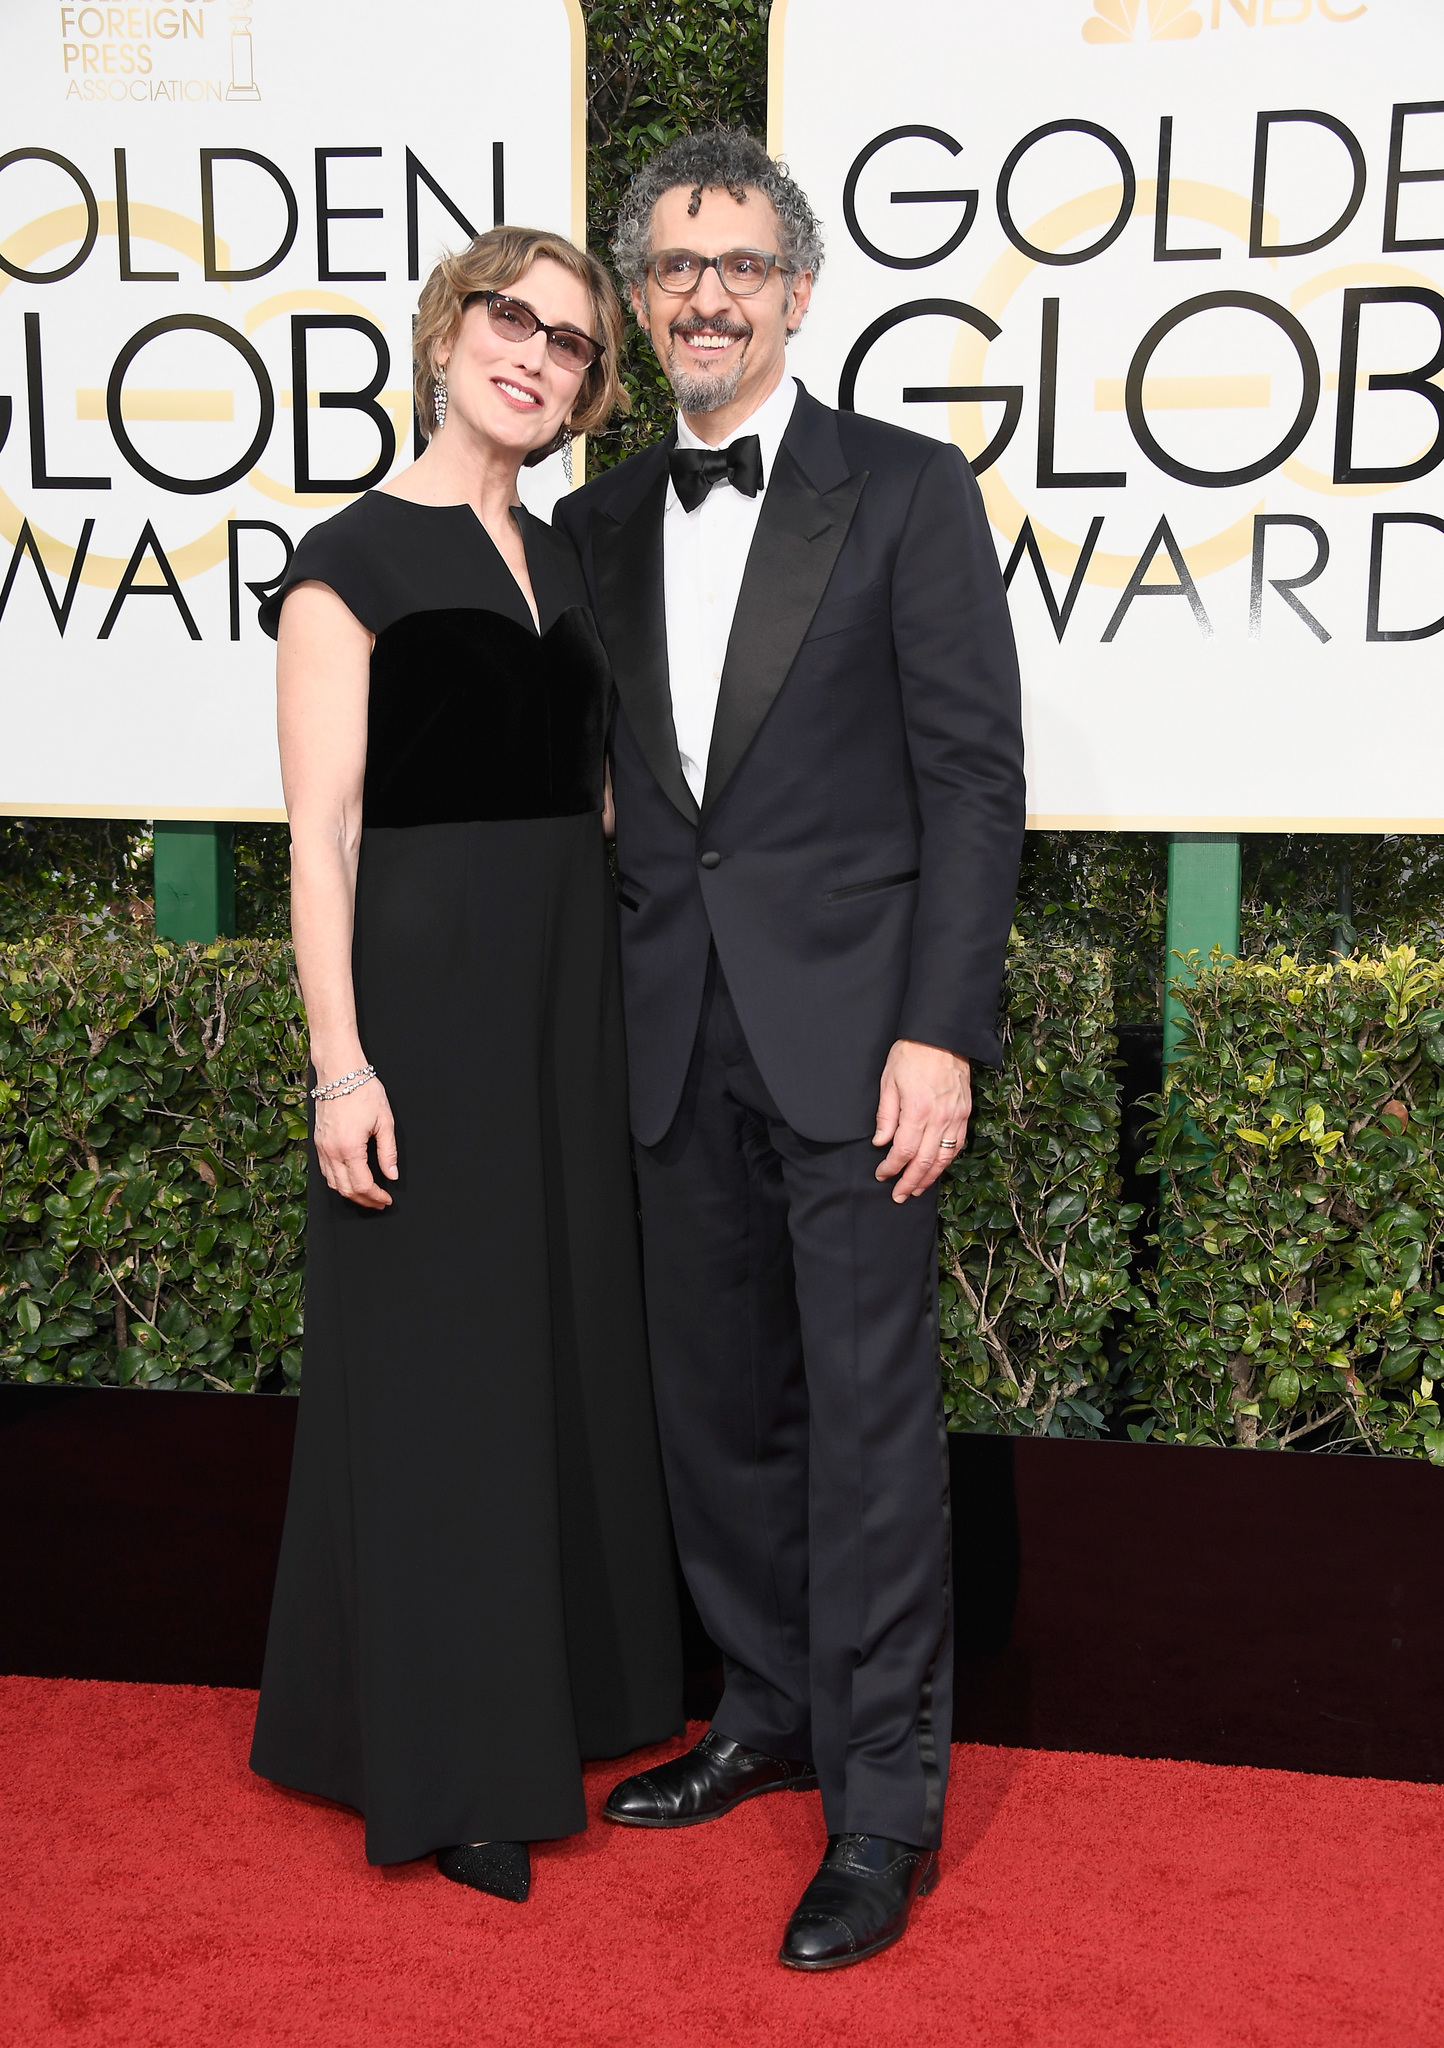 John Turturro and Katherine Borowitz at an event for The 74th Annual Golden Globe Awards 2017 (2017)